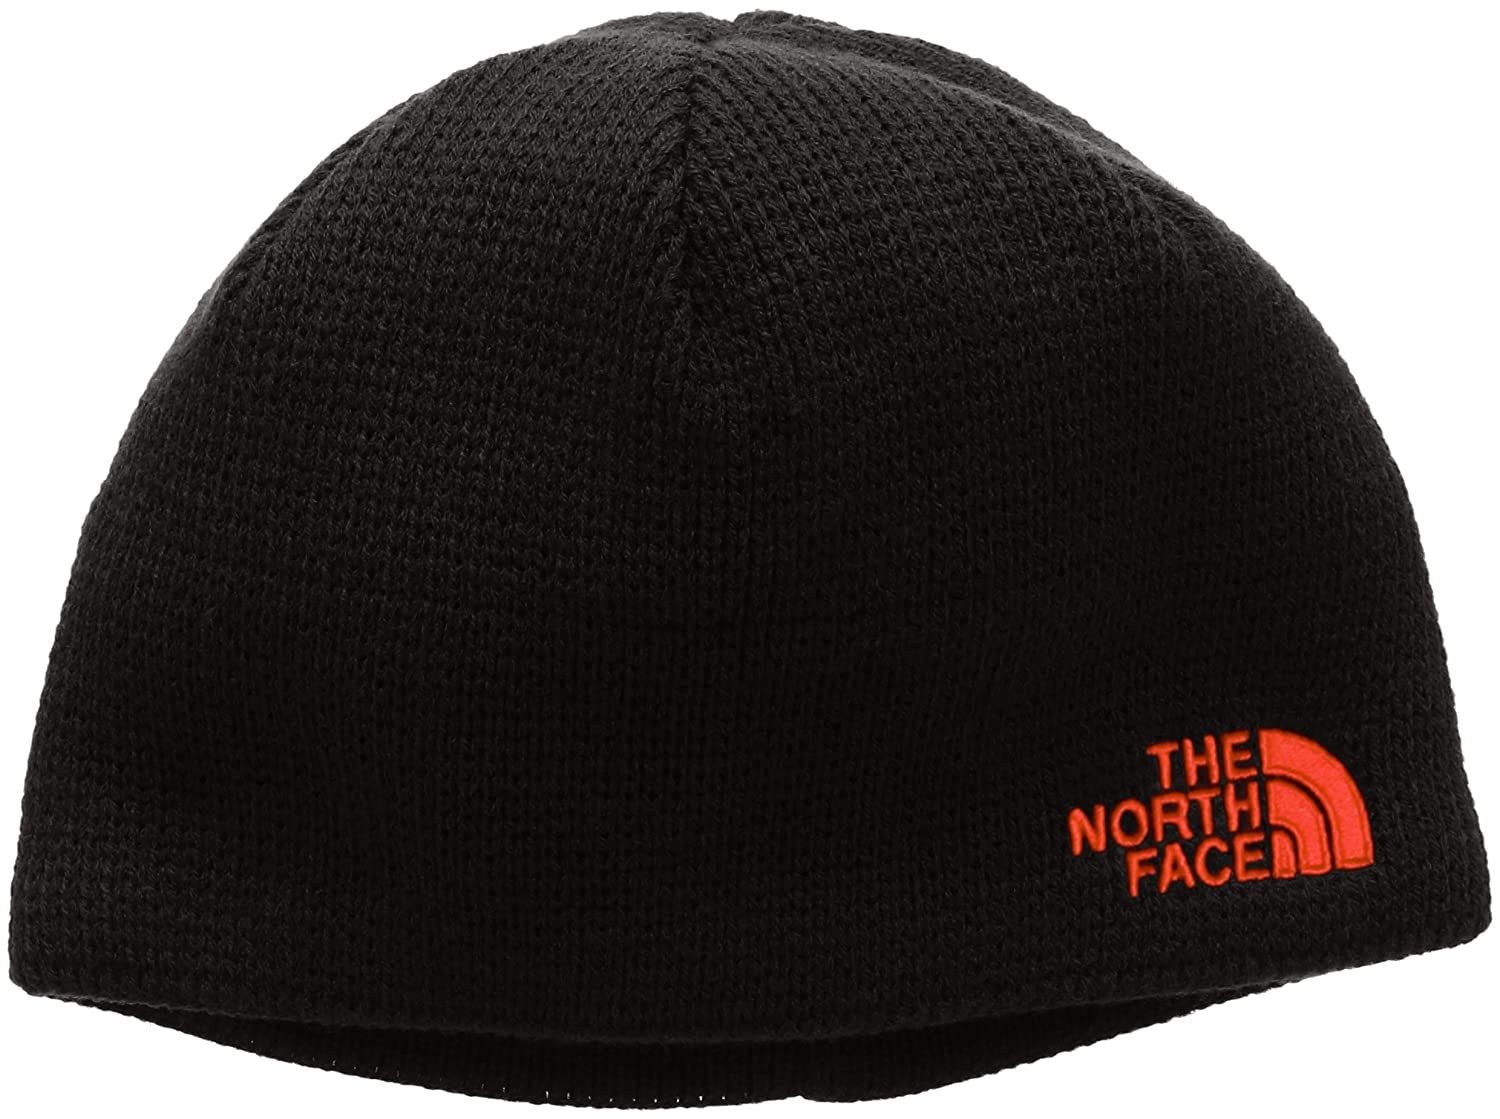 7d7795646d044 The North Face Bones Beanie Outdoor Hat: Amazon.co.uk: Clothing